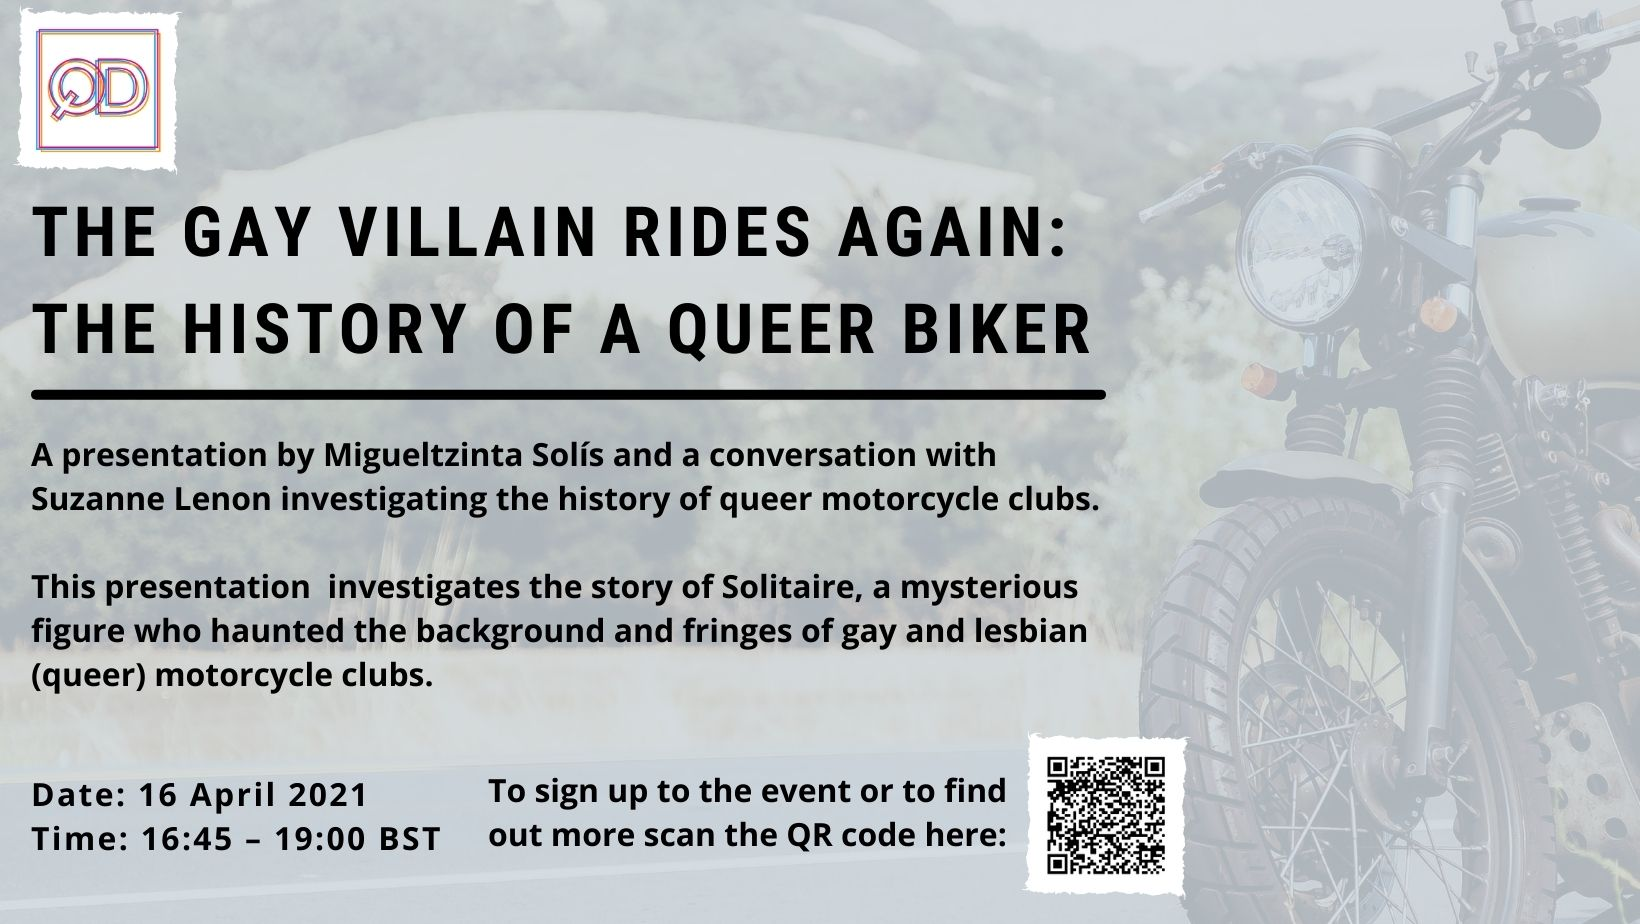 The Gay Villain Rides Again_ The History of a Queer Biker